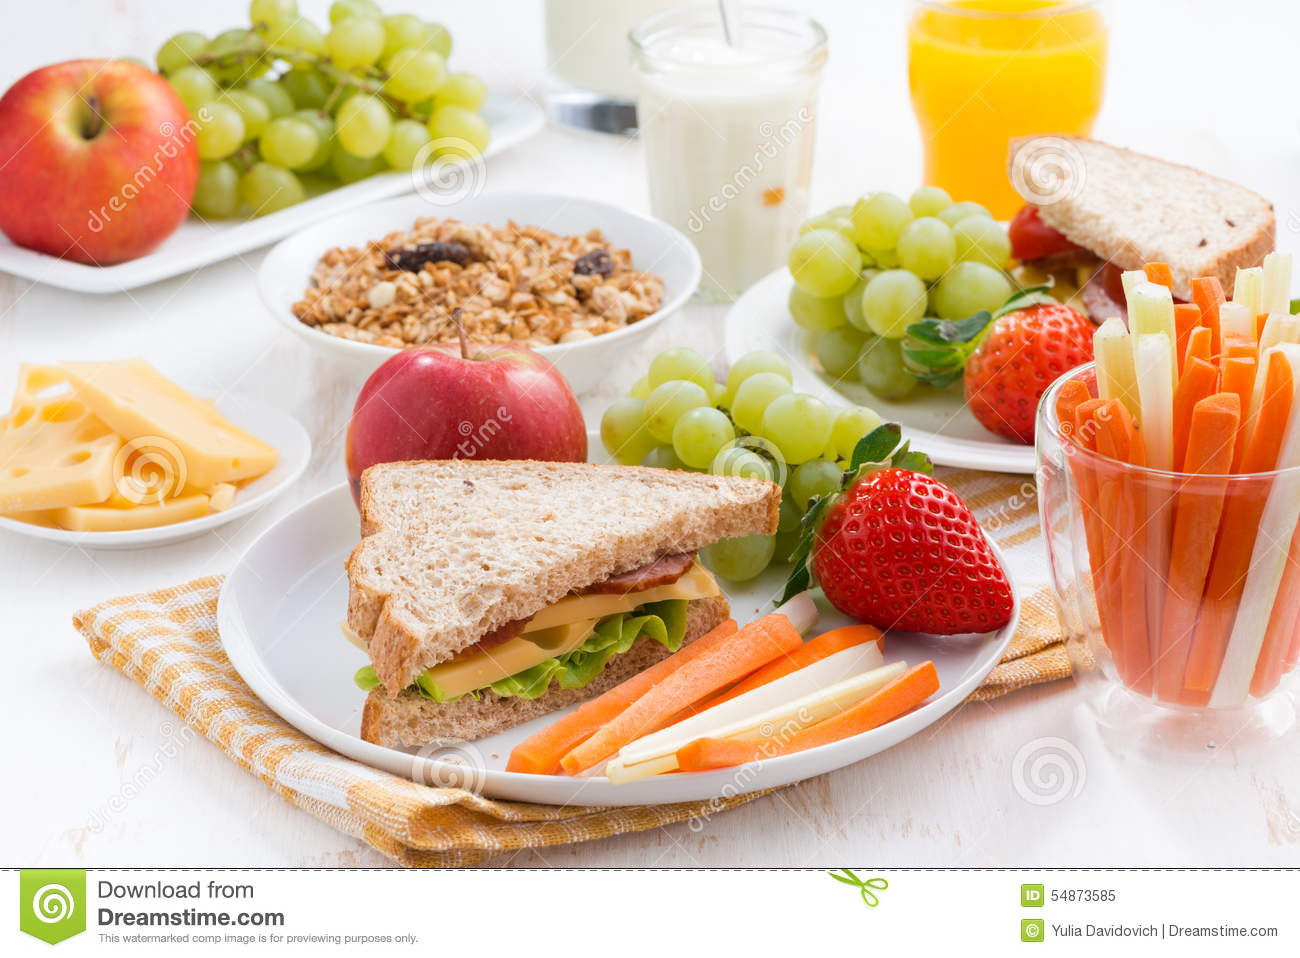 Healthy Breakfast For School  Healthy School Breakfast With Fruits And Ve ables Stock